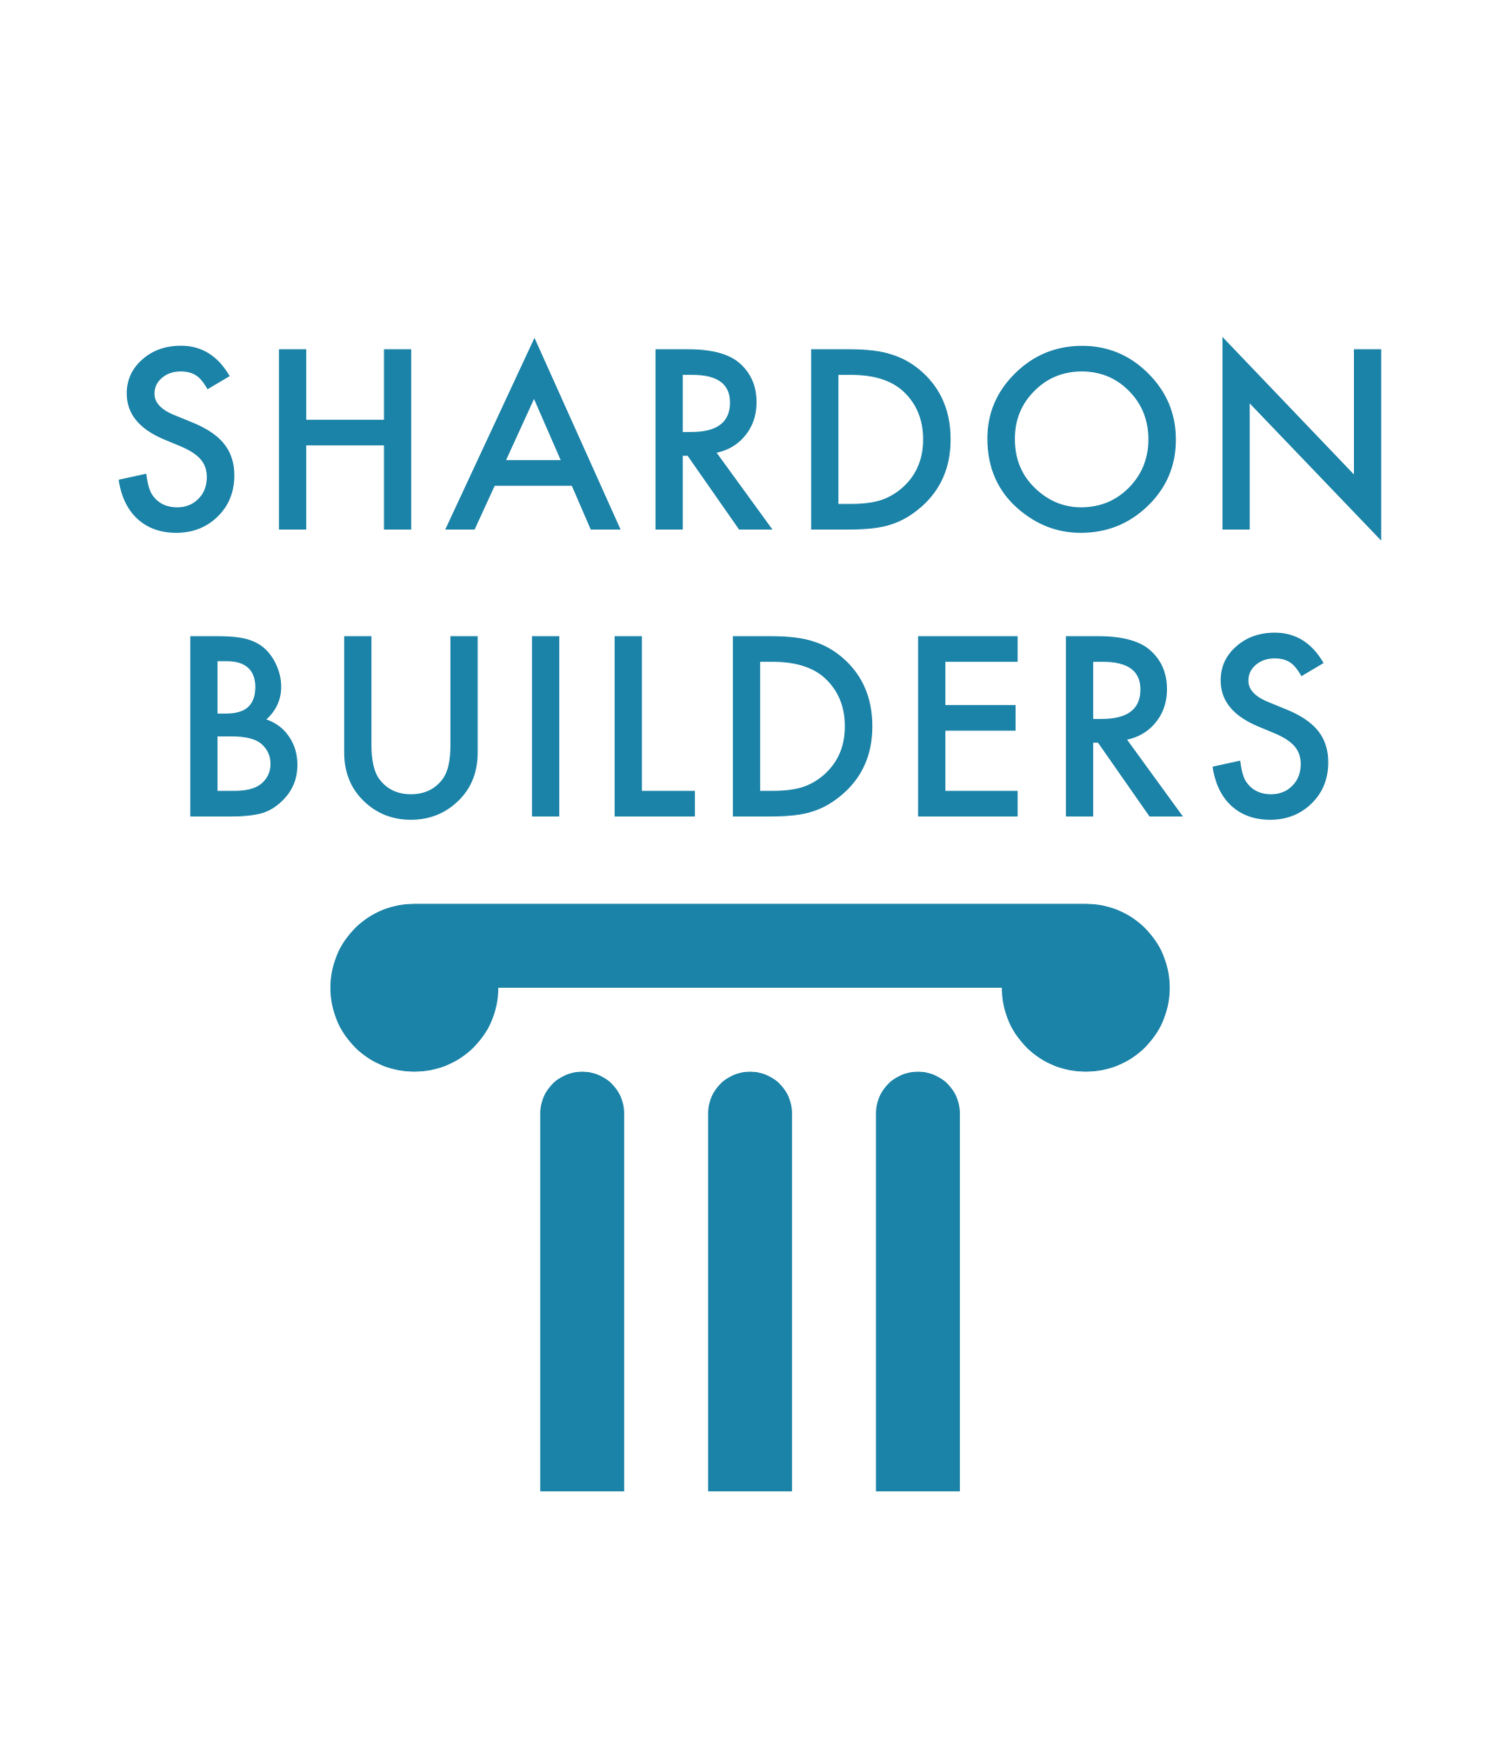 Shardon Builders